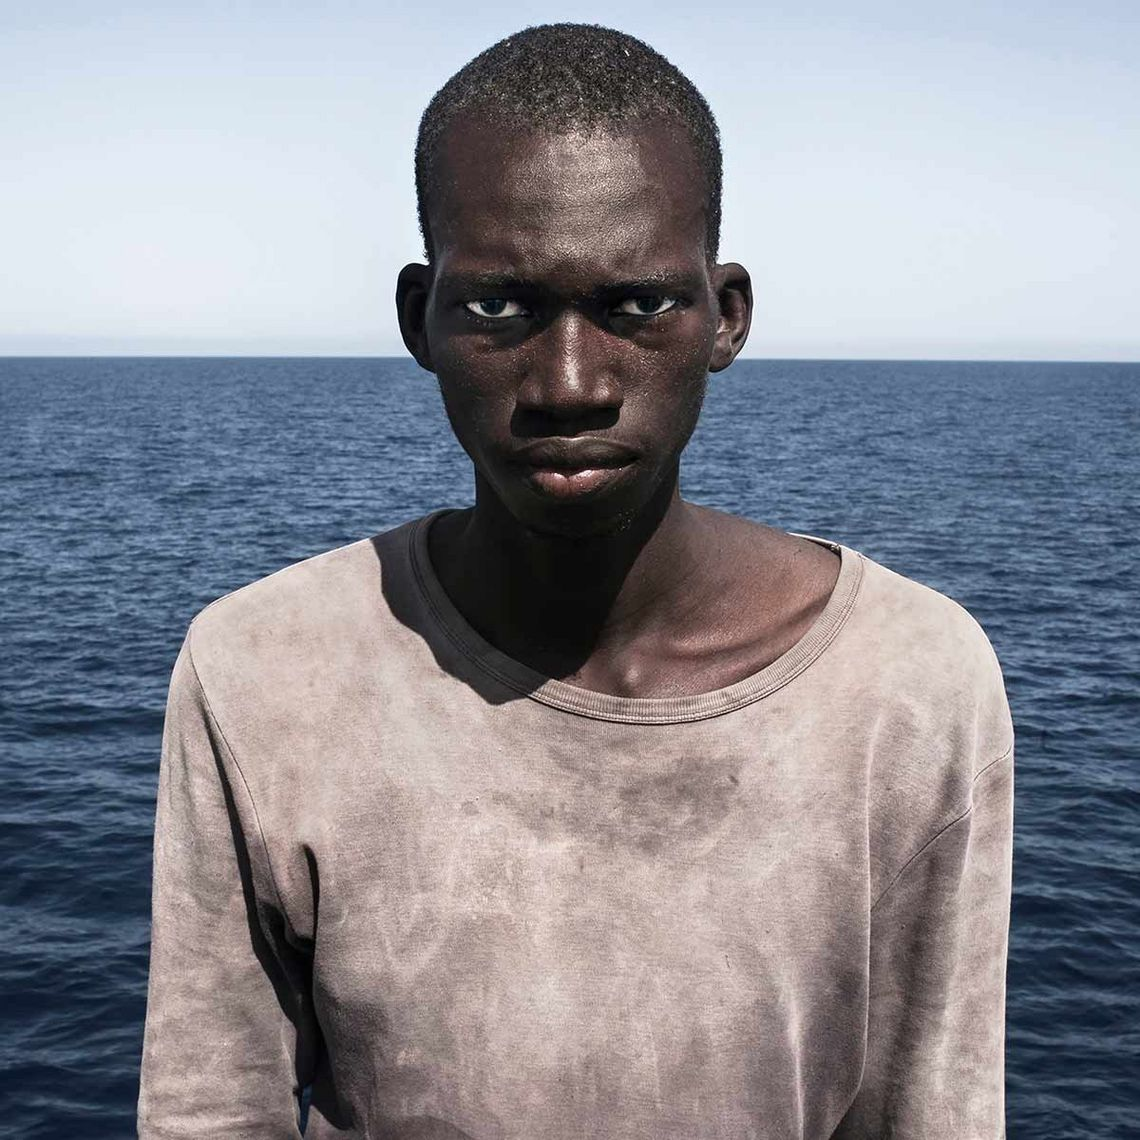 Brows furrowed, 23-year-old migrant Amadou Sumalia stares down the lens, minutes after being rescued from an overcrowded inflatable boat. He is aboard a German NGO vessel, the Iuventa, and the horizon of the Mediterranean can be seen in the backdrop.